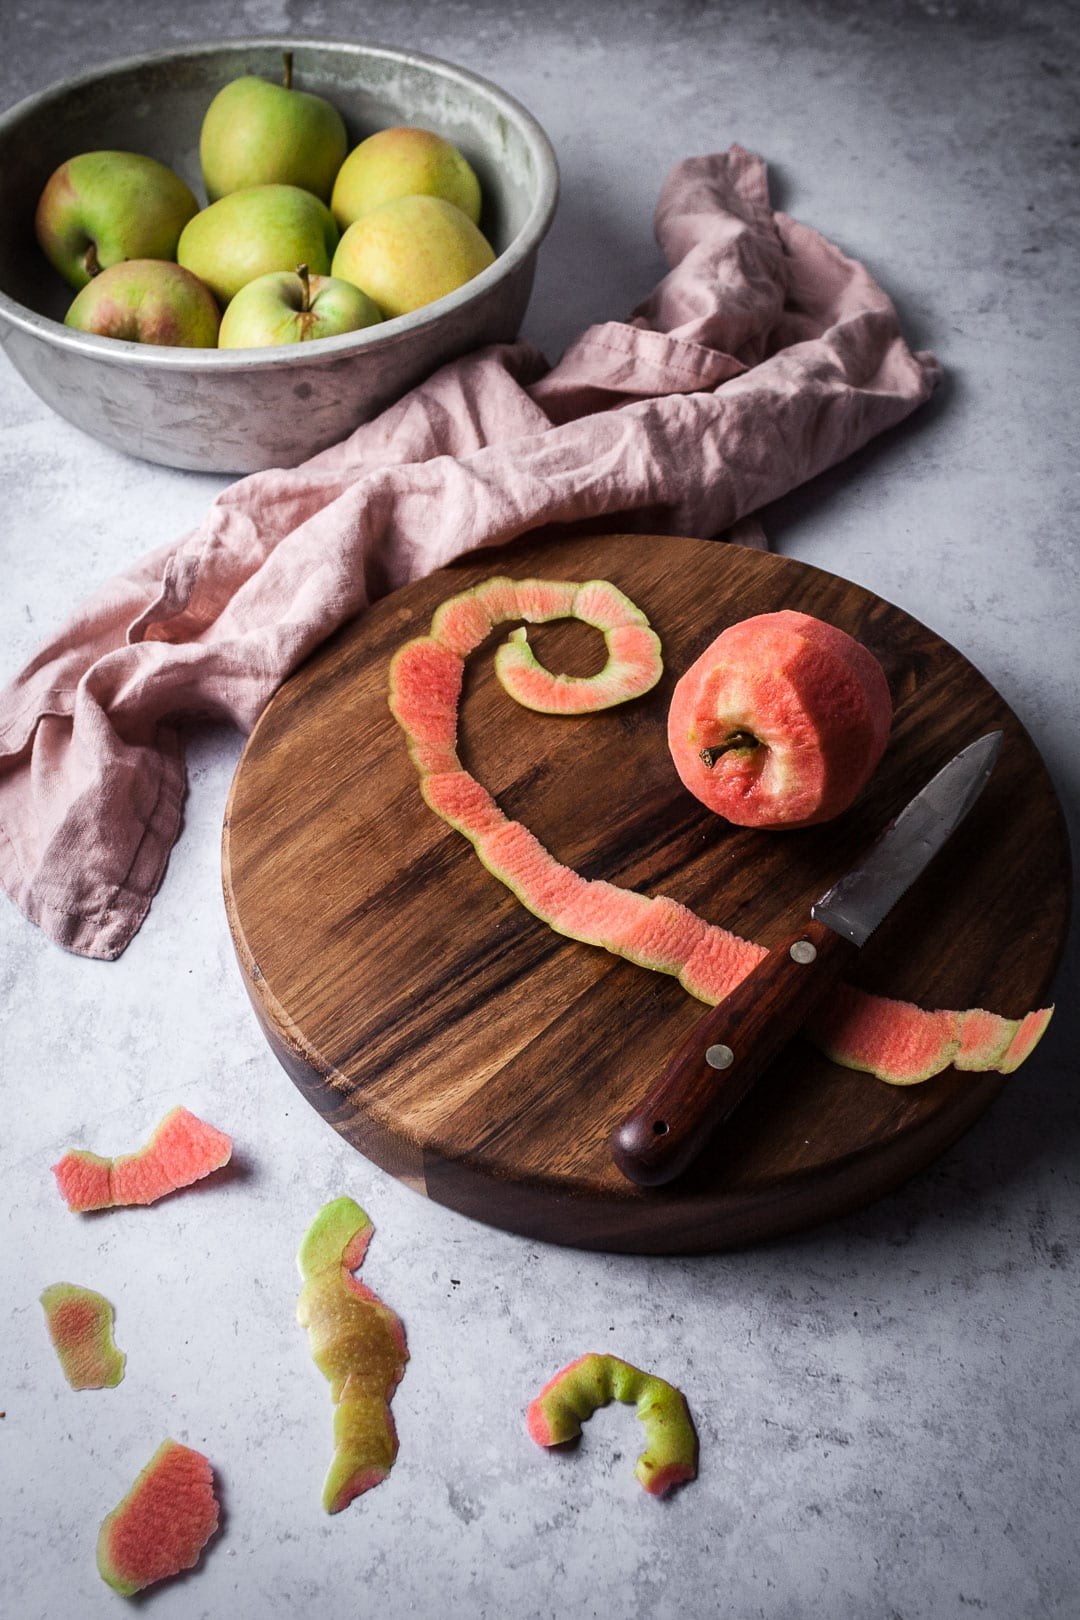 Peeled pink apple on a wooden cutting board and a grey background - prep shot for Pink Apple Tart with Cream Cheese Filling